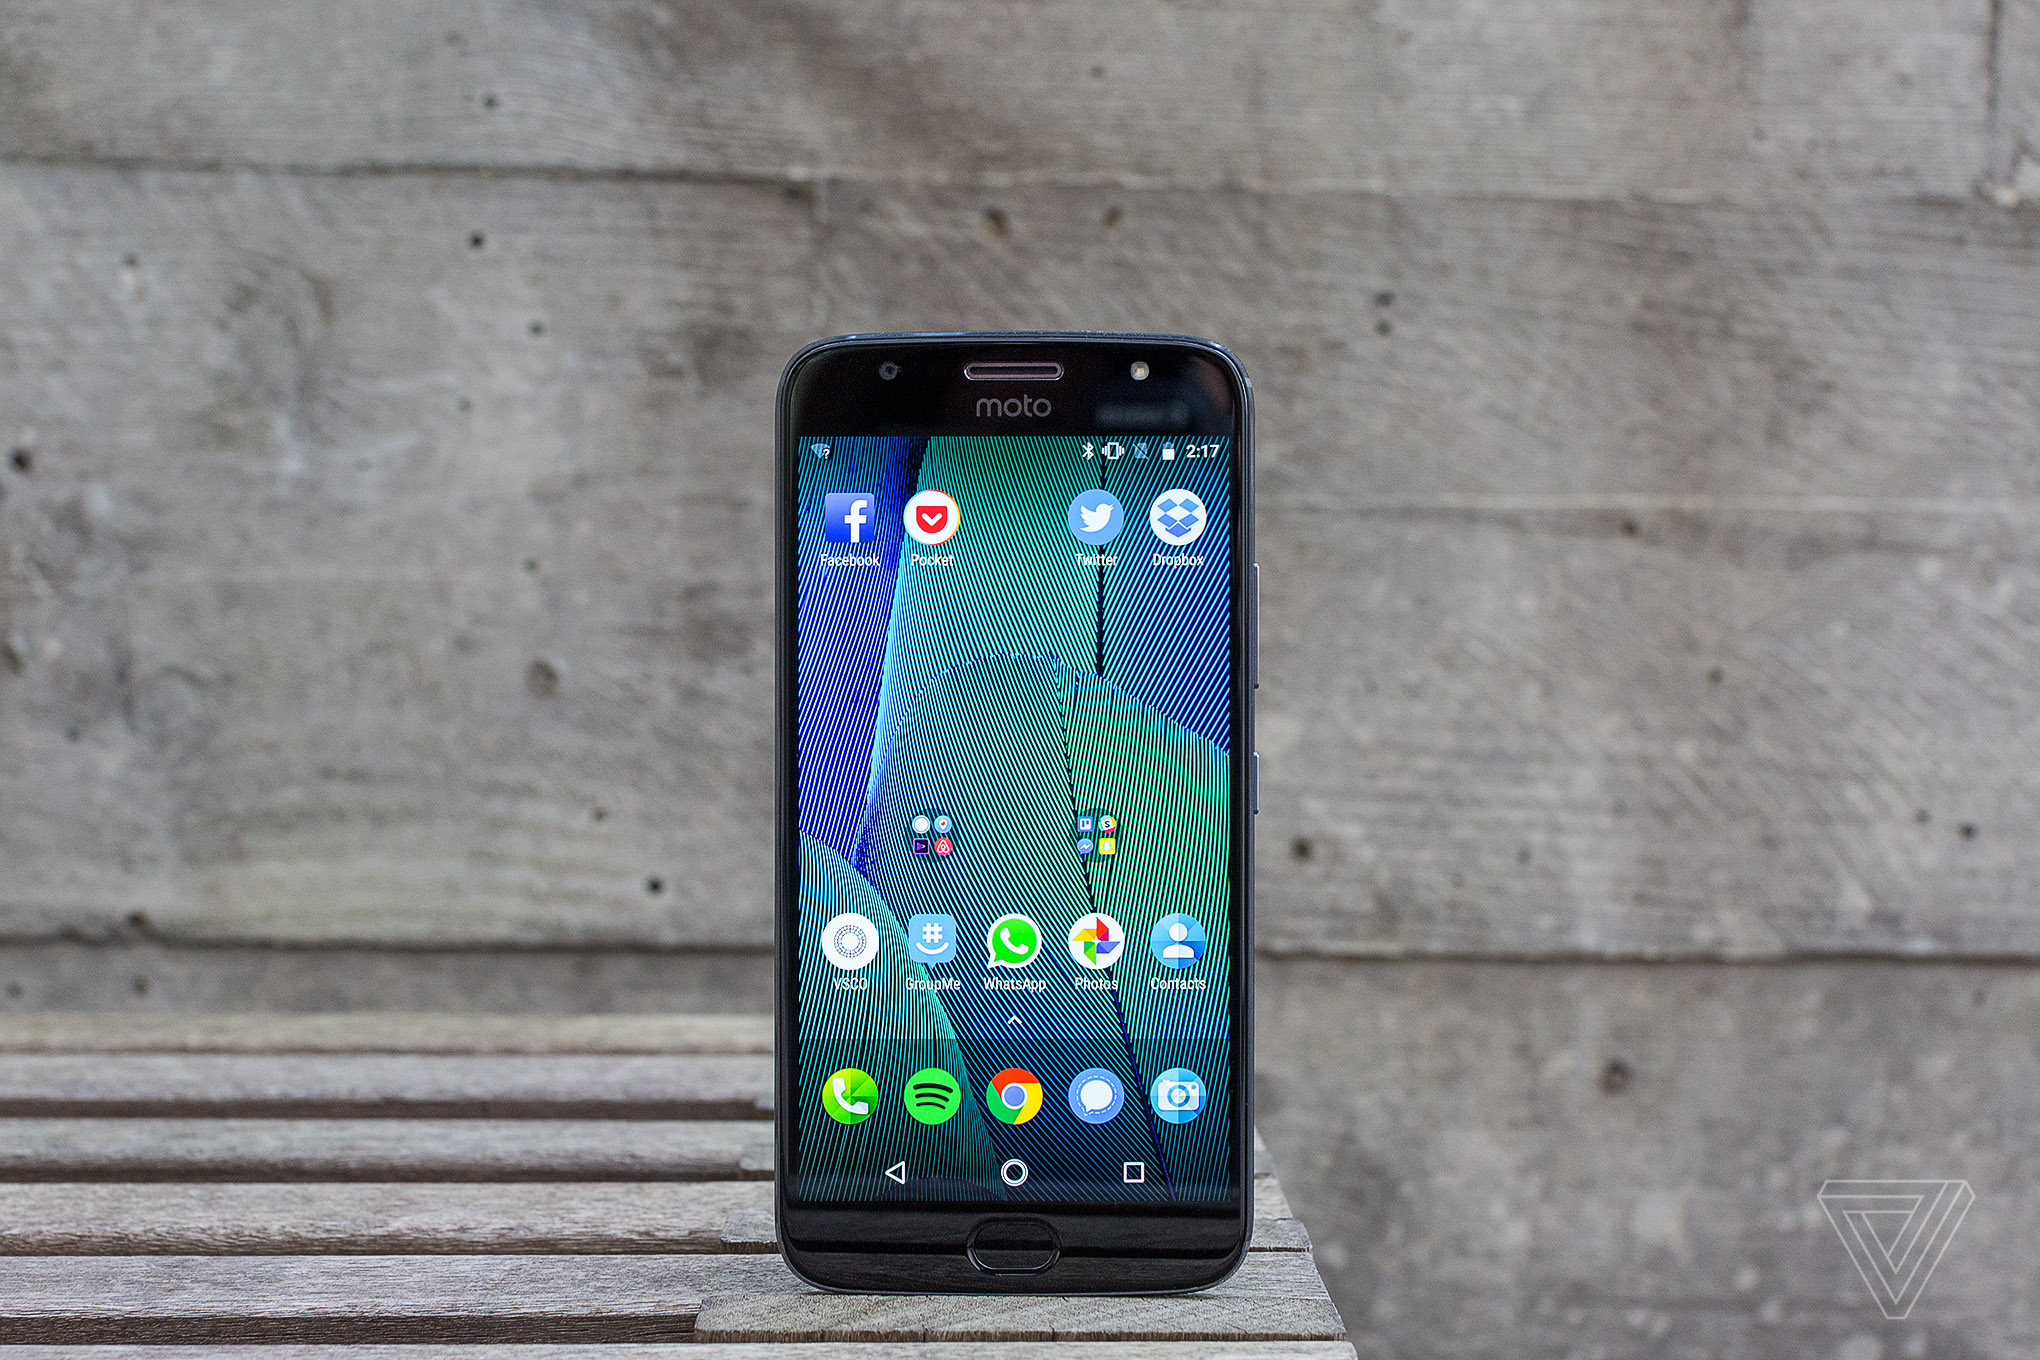 Motorola Moto G5S Plus review: bigger and better, but at a cost